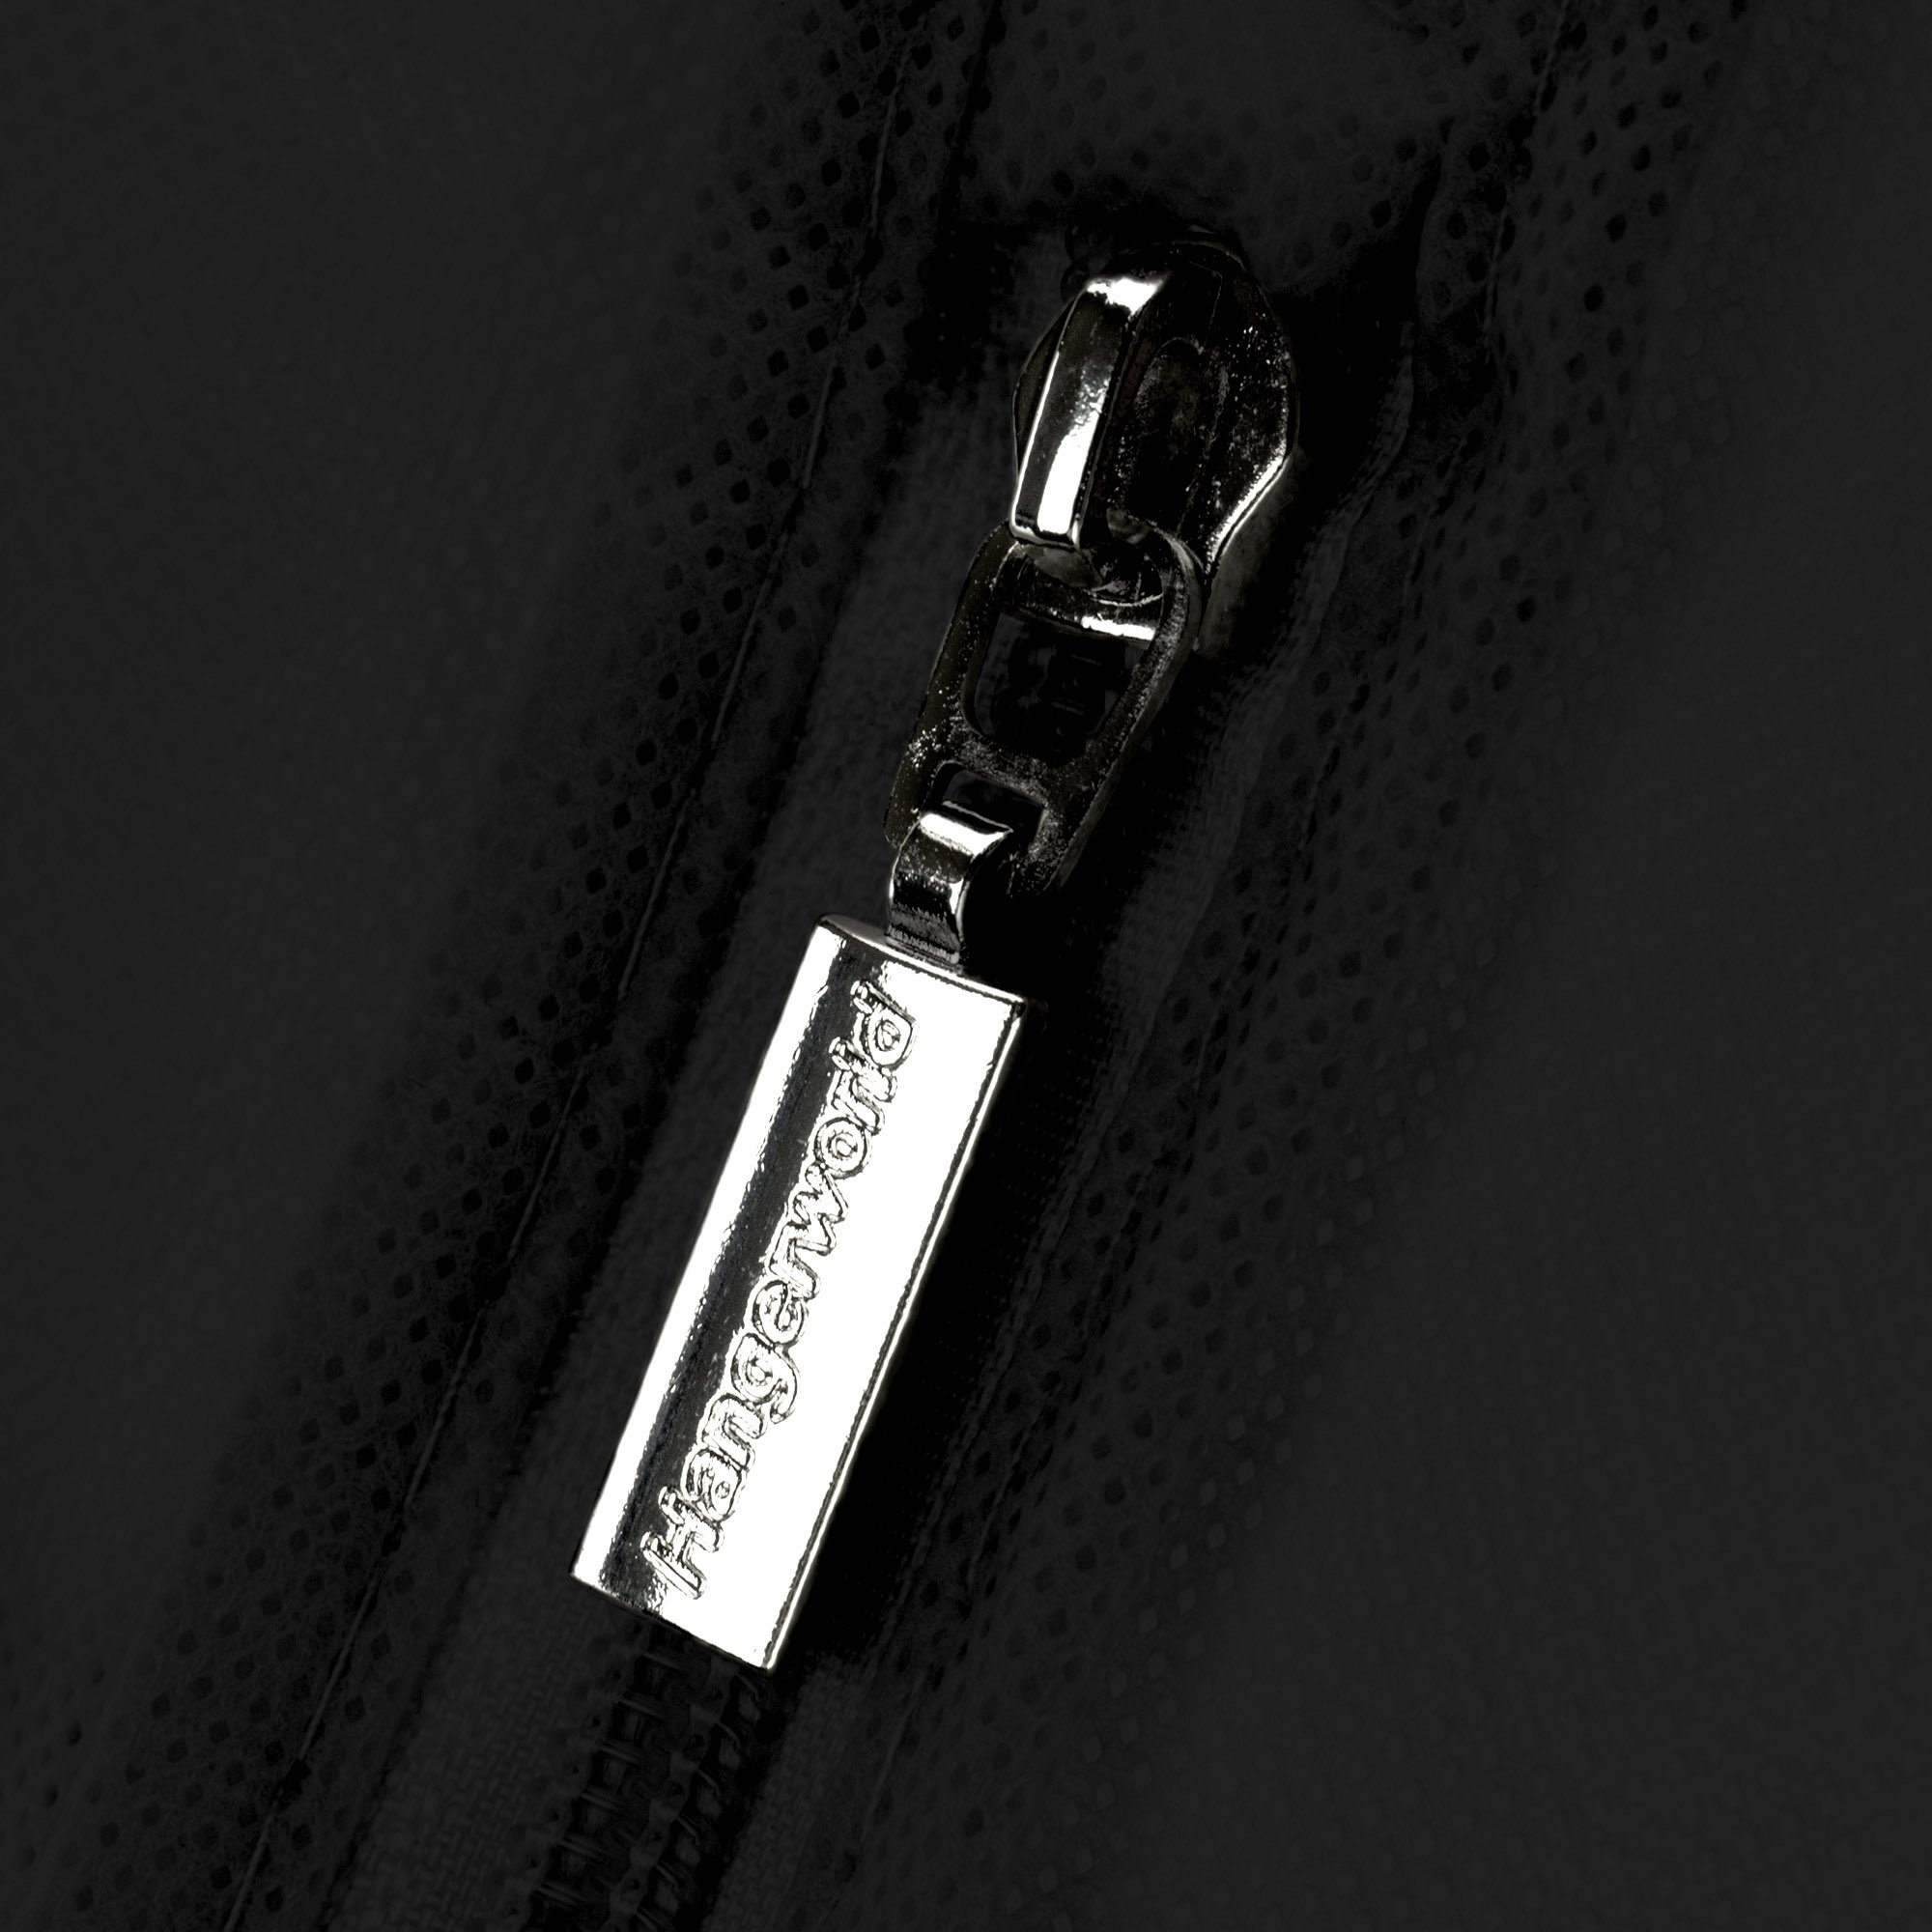 Hangerworld Black Breathable 60 inch Suit Garment Bag - Extra Long cover for Dresses and Gowns, Featuring a Secret Internal Zipped Pocket for safe storage. by HANGERWORLD (Image #4)